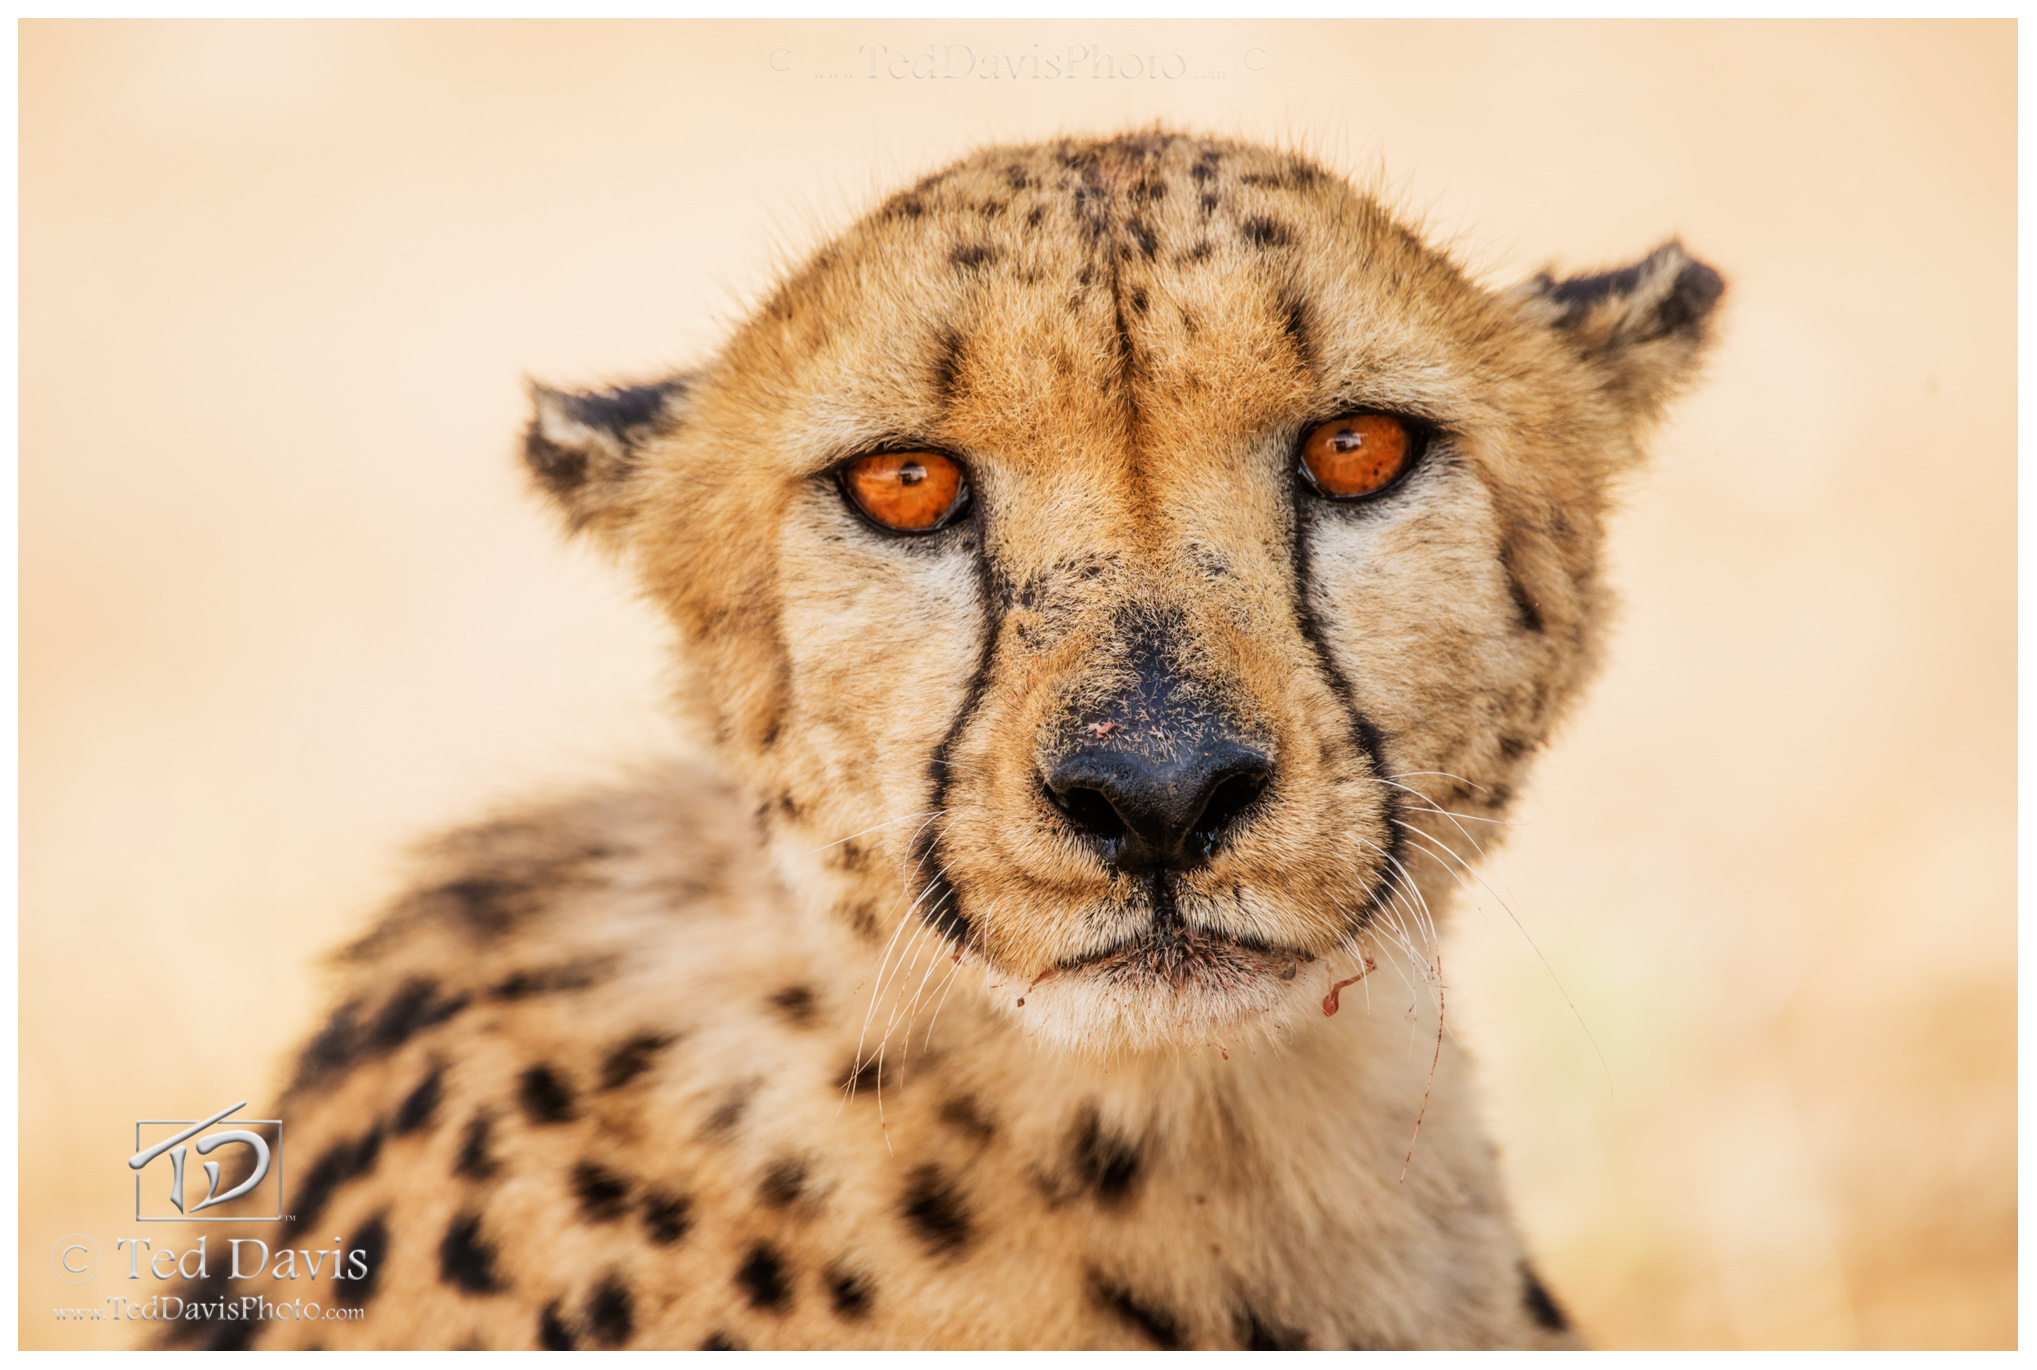 cheetah, namibia, etosha, meal, prey, brother, mammals, marveled, photo